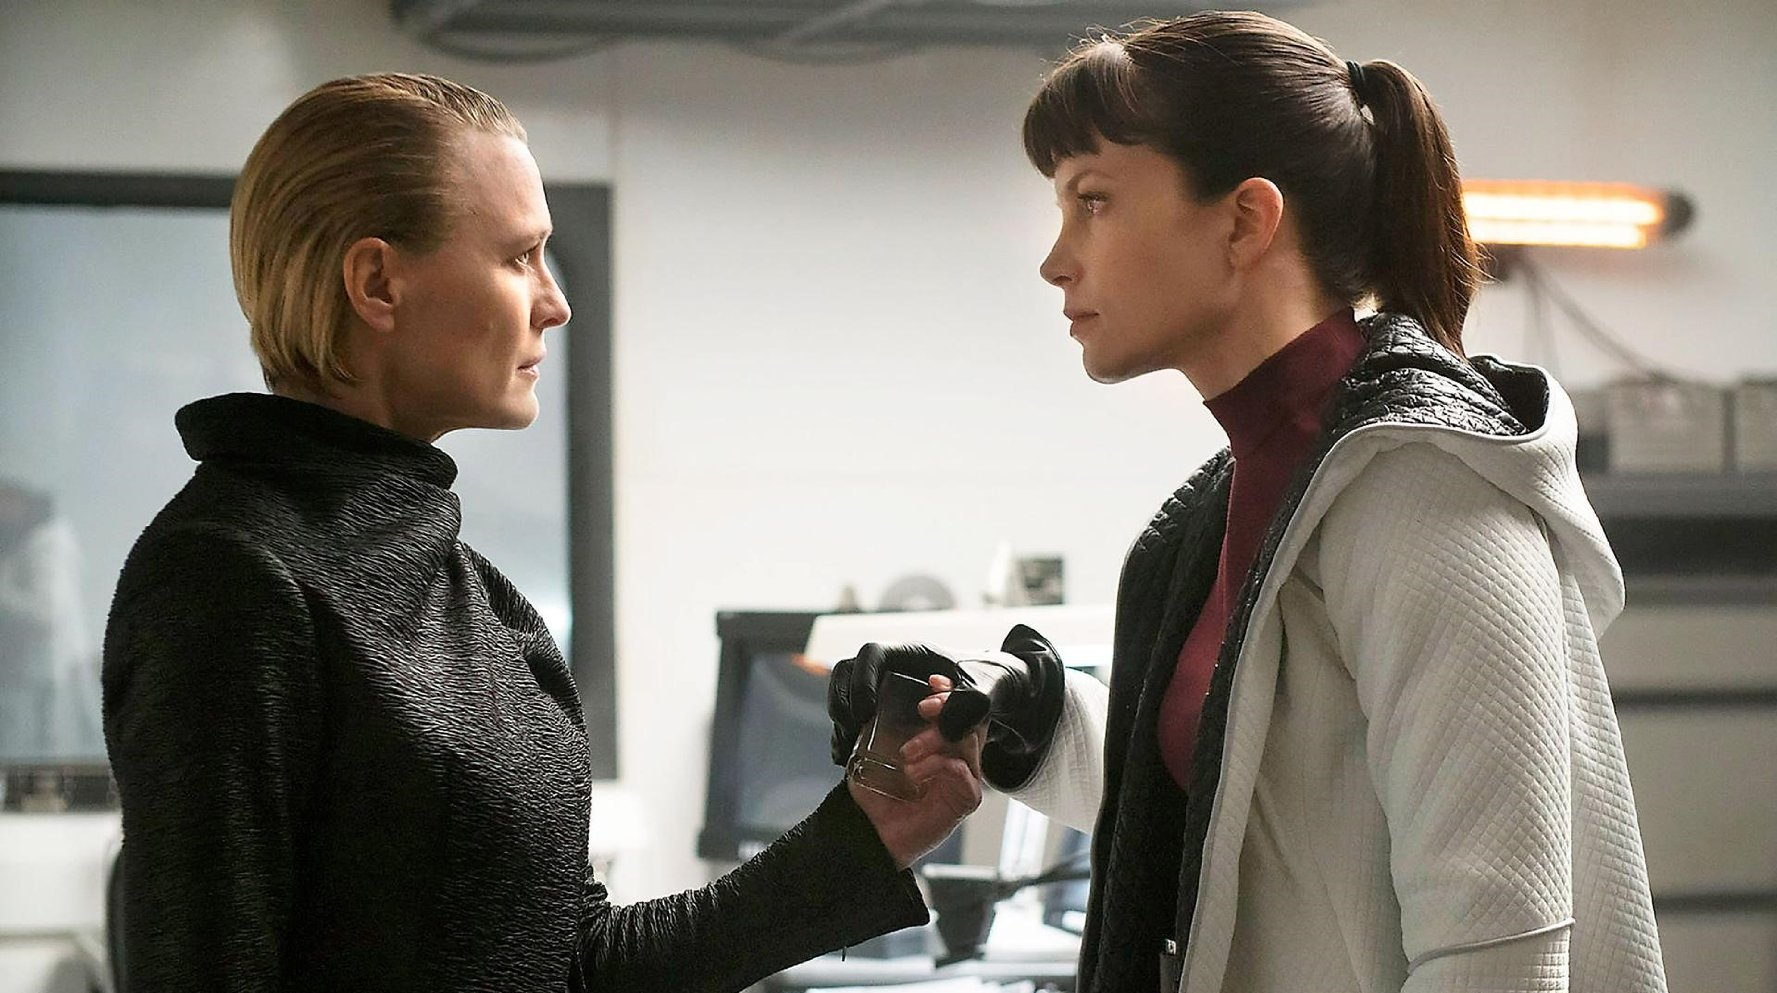 Sylvia Hoeks and robin Wright in Blade Runner 2049